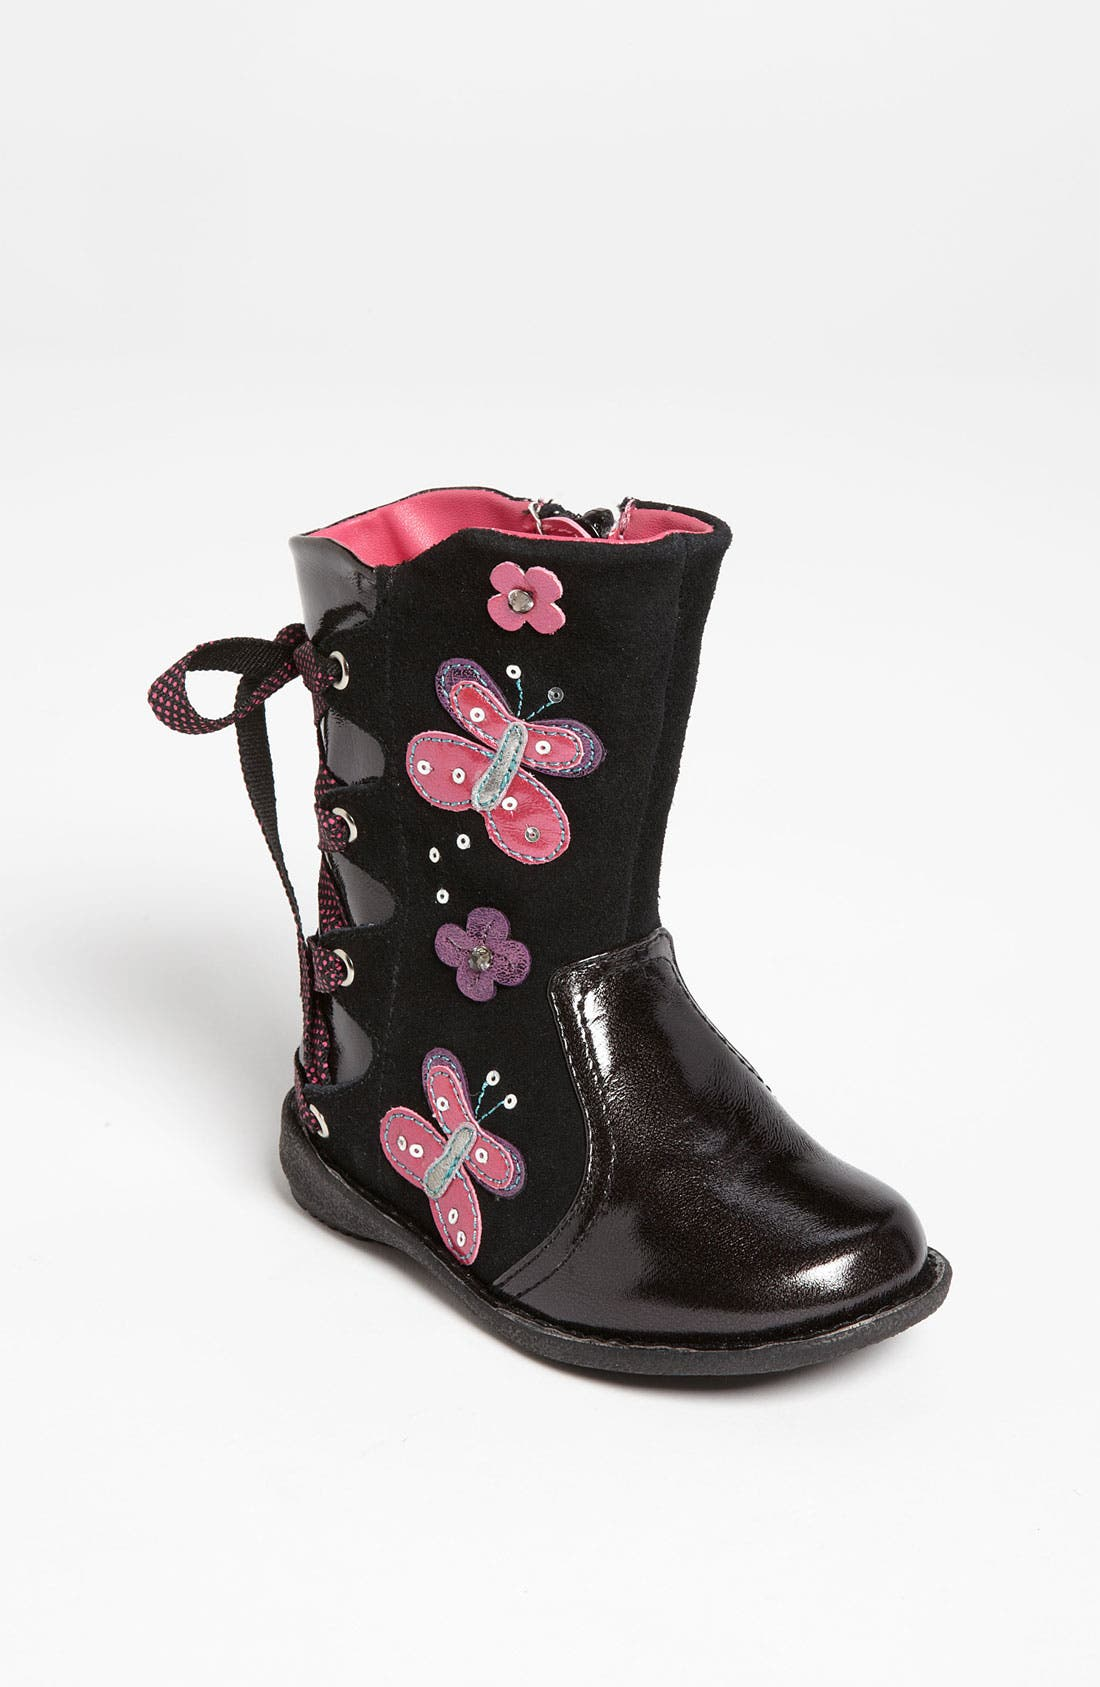 Main Image - Kenneth Cole Reaction 'Pip Pop' Boot (Walker & Toddler)